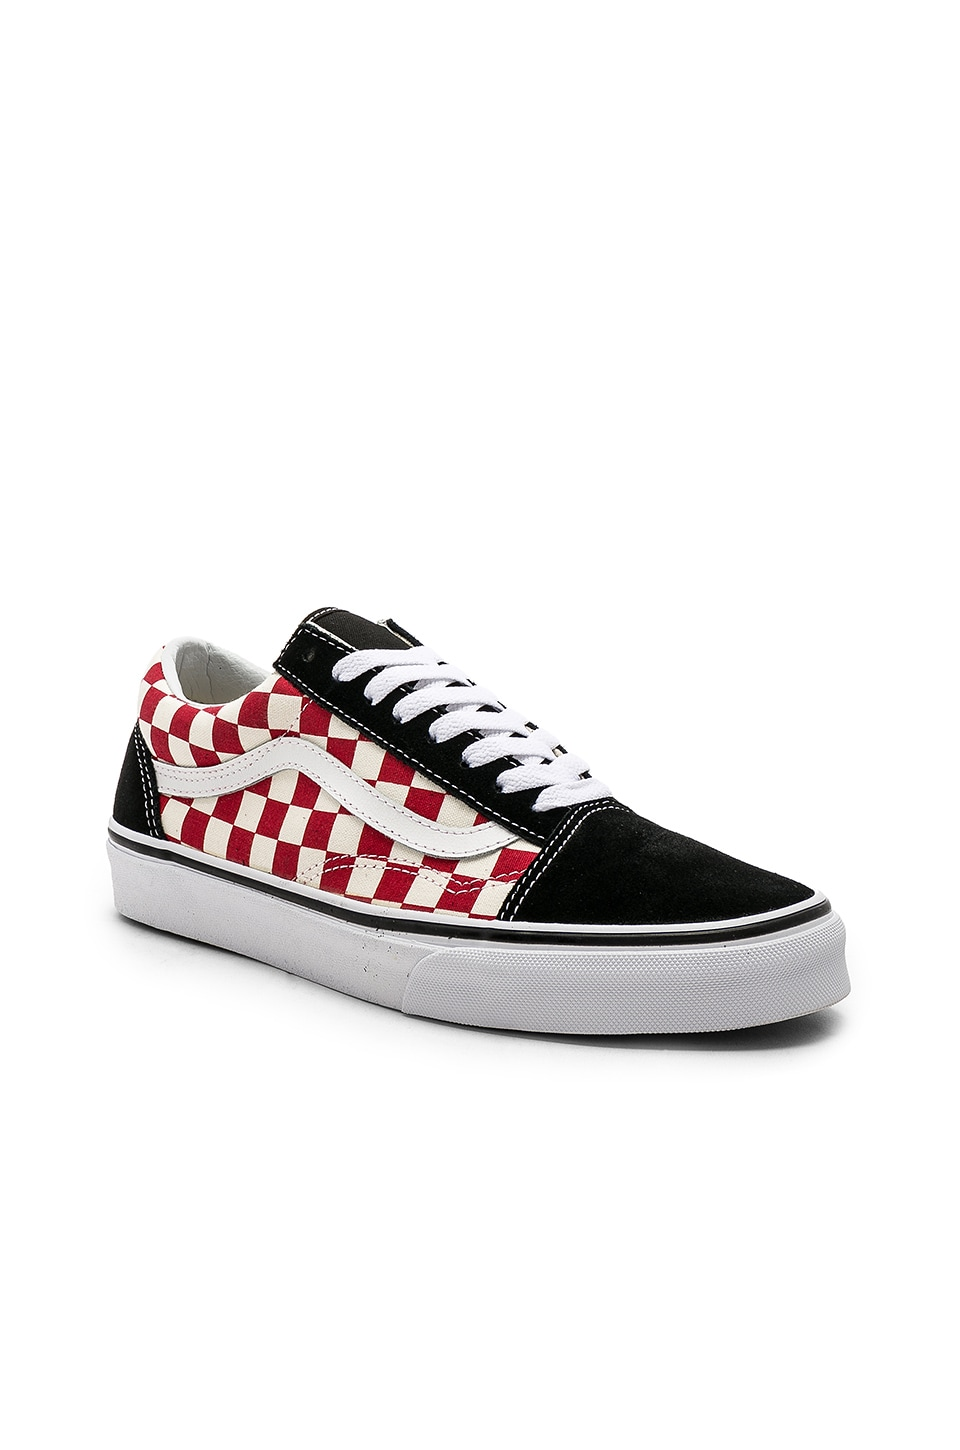 red checkerboard old skool vans mens